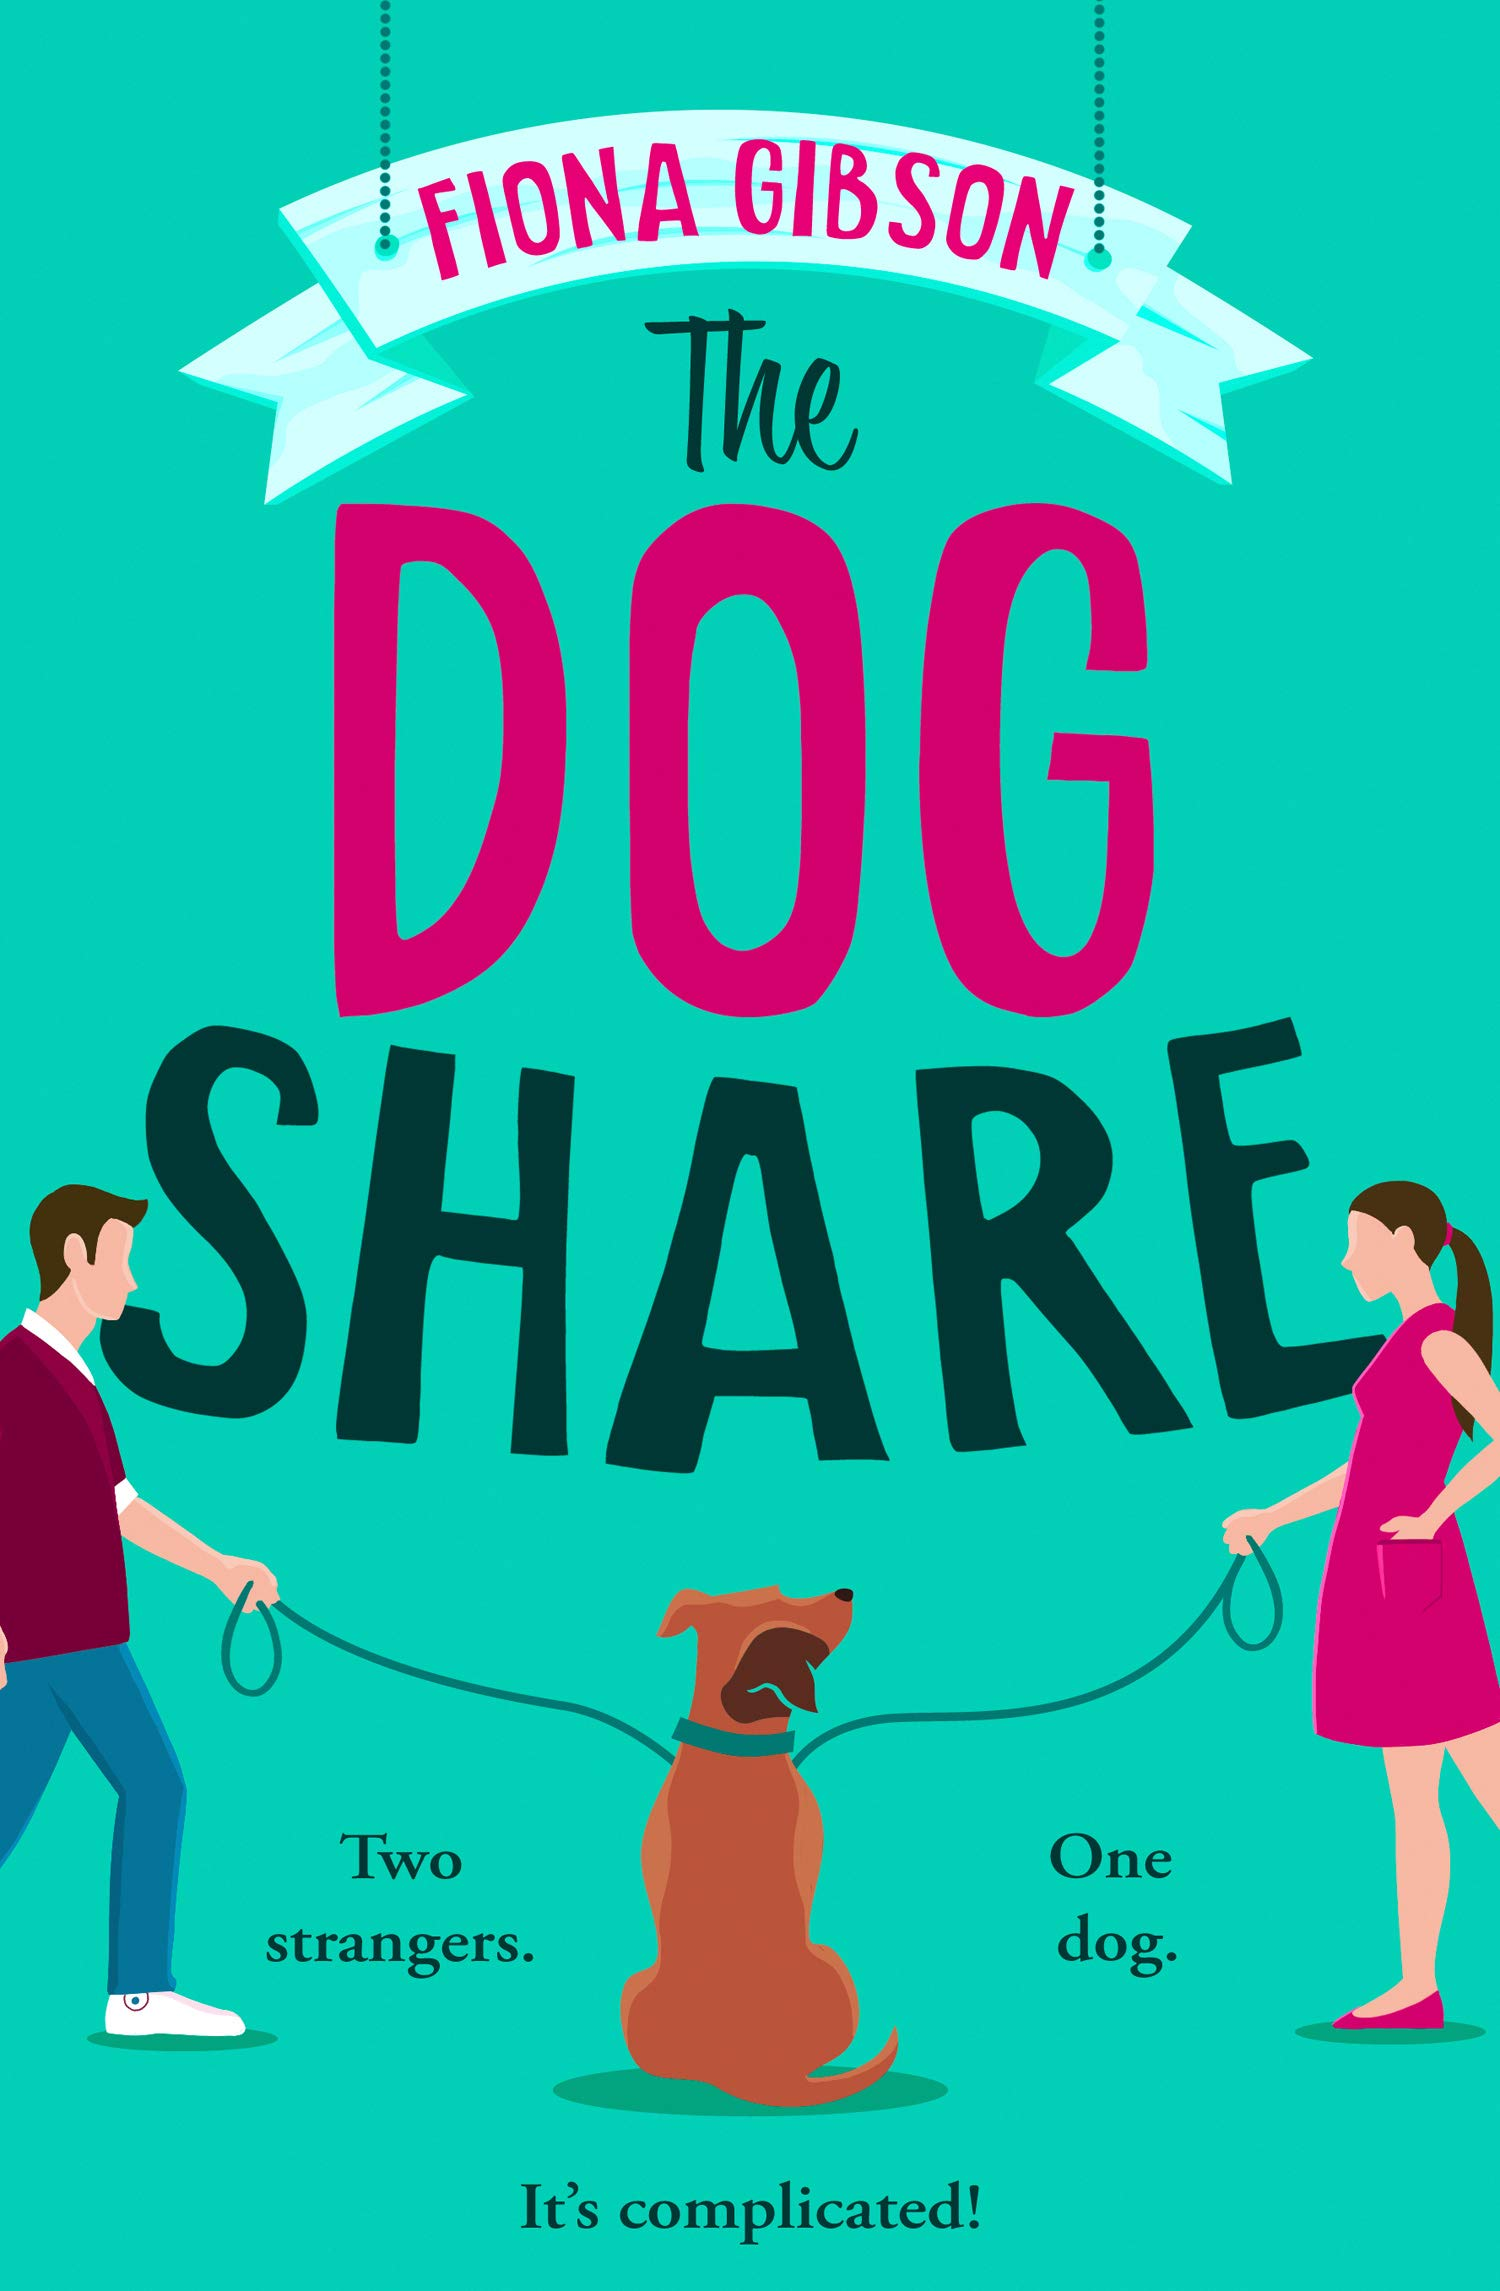 The Dog Share: Amazon.co.uk: Gibson, Fiona: 9780008385996: Books